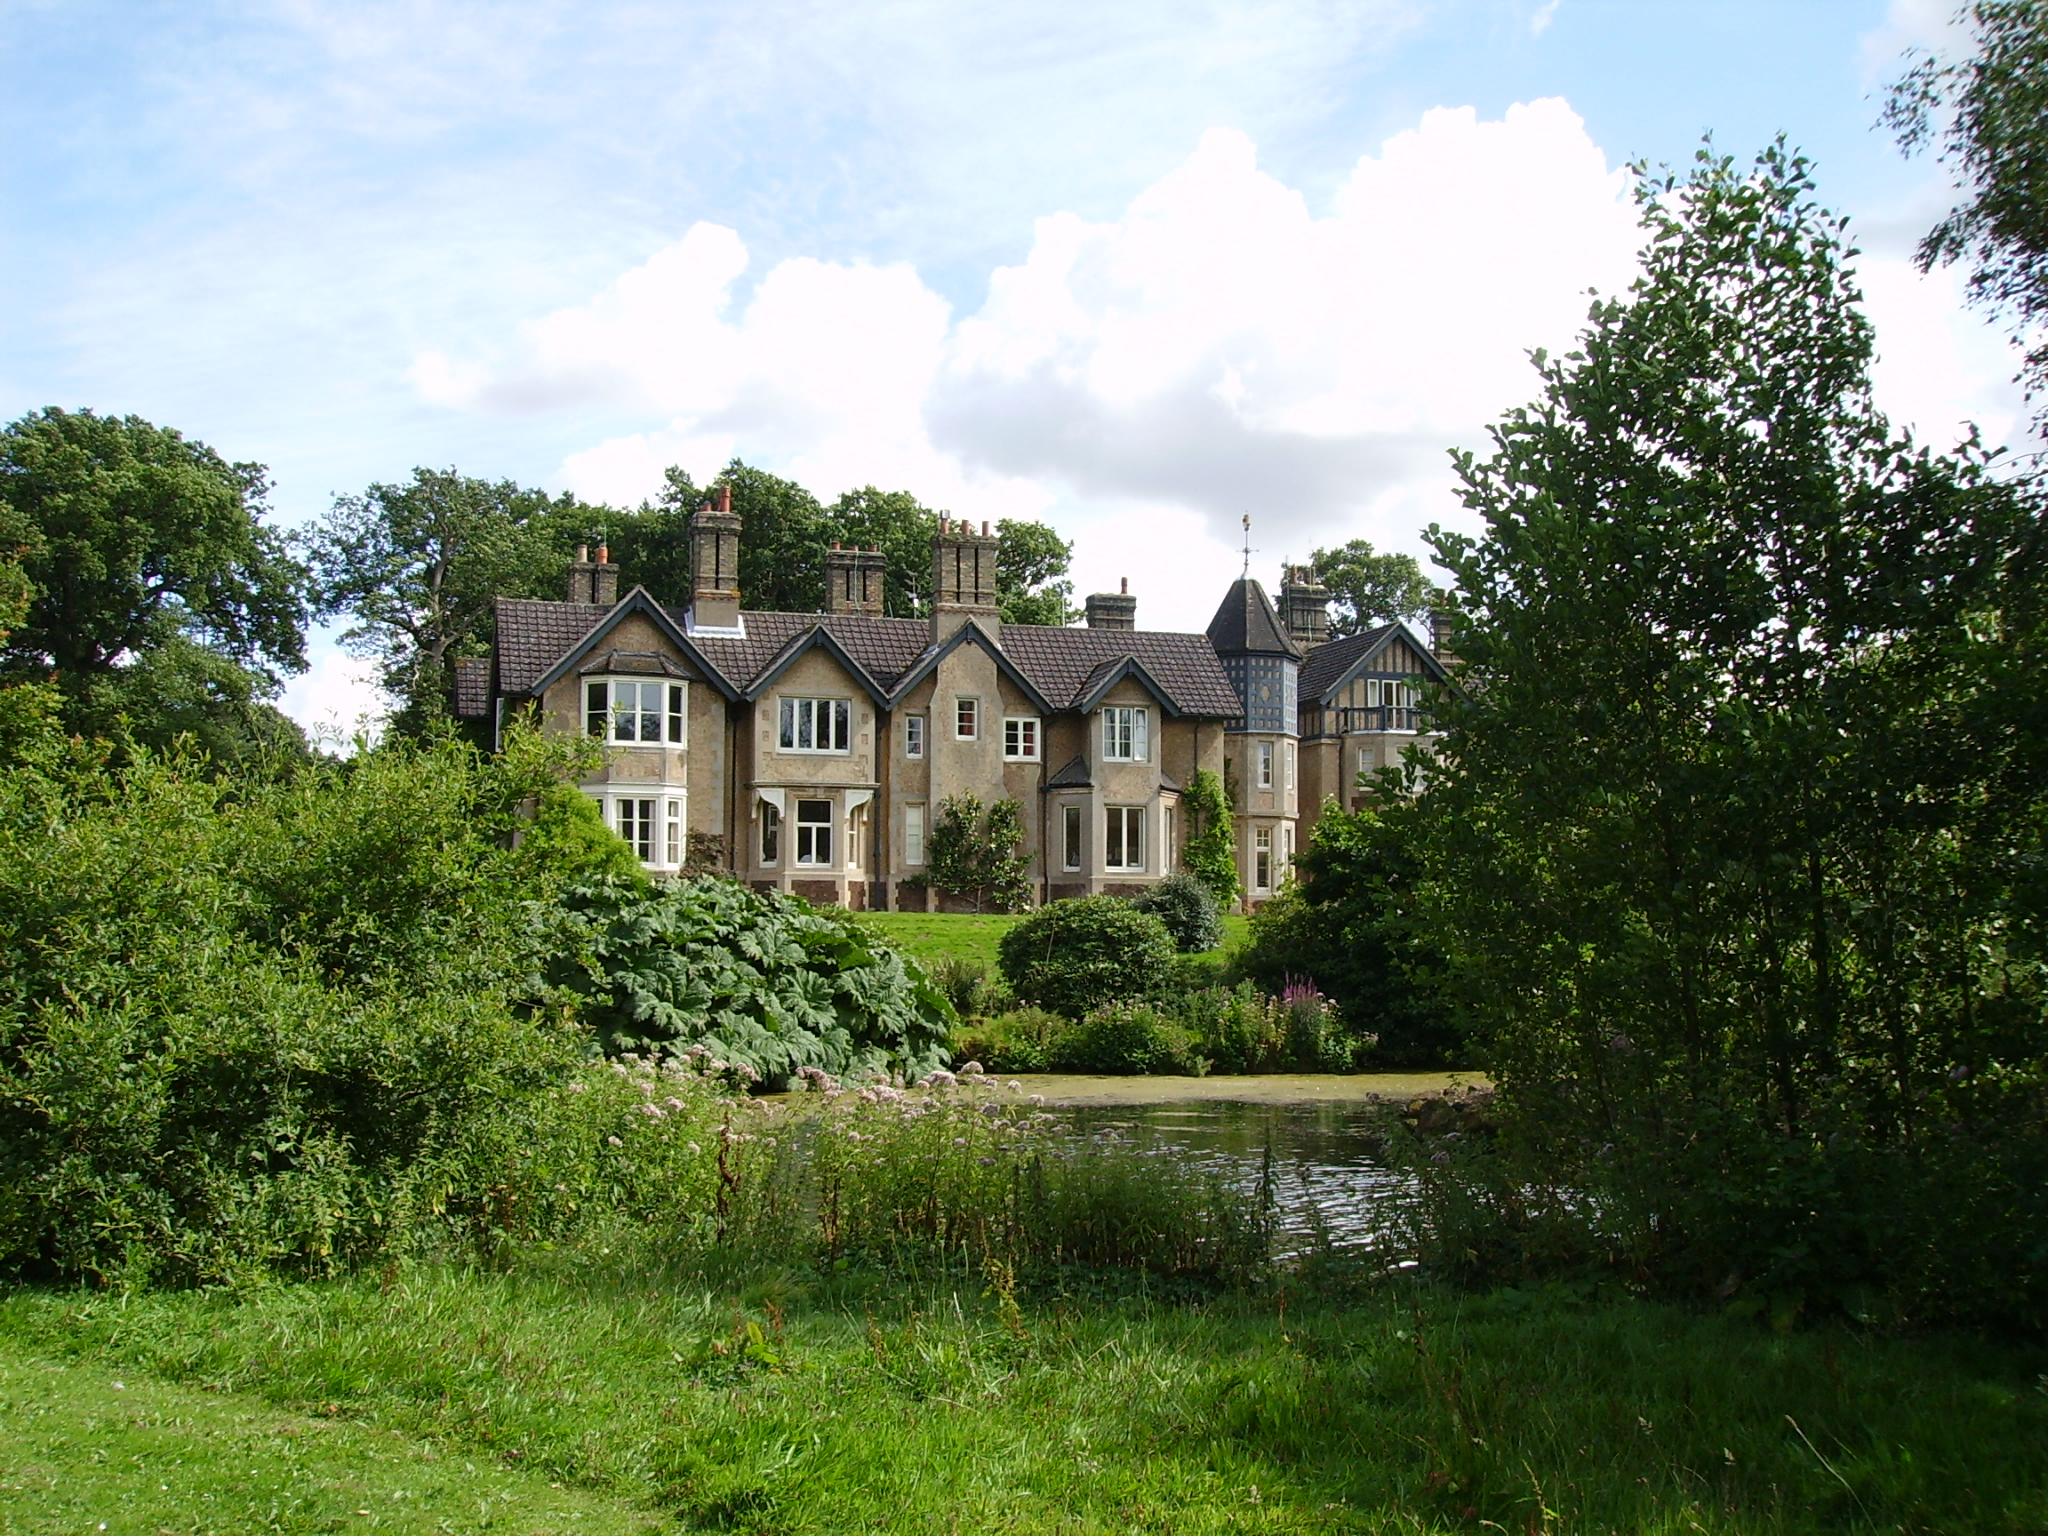 York Cottage at Sandringham House: King George V and his wife lived here from 1893 to 1926. Photo taken on August 15, 2007.